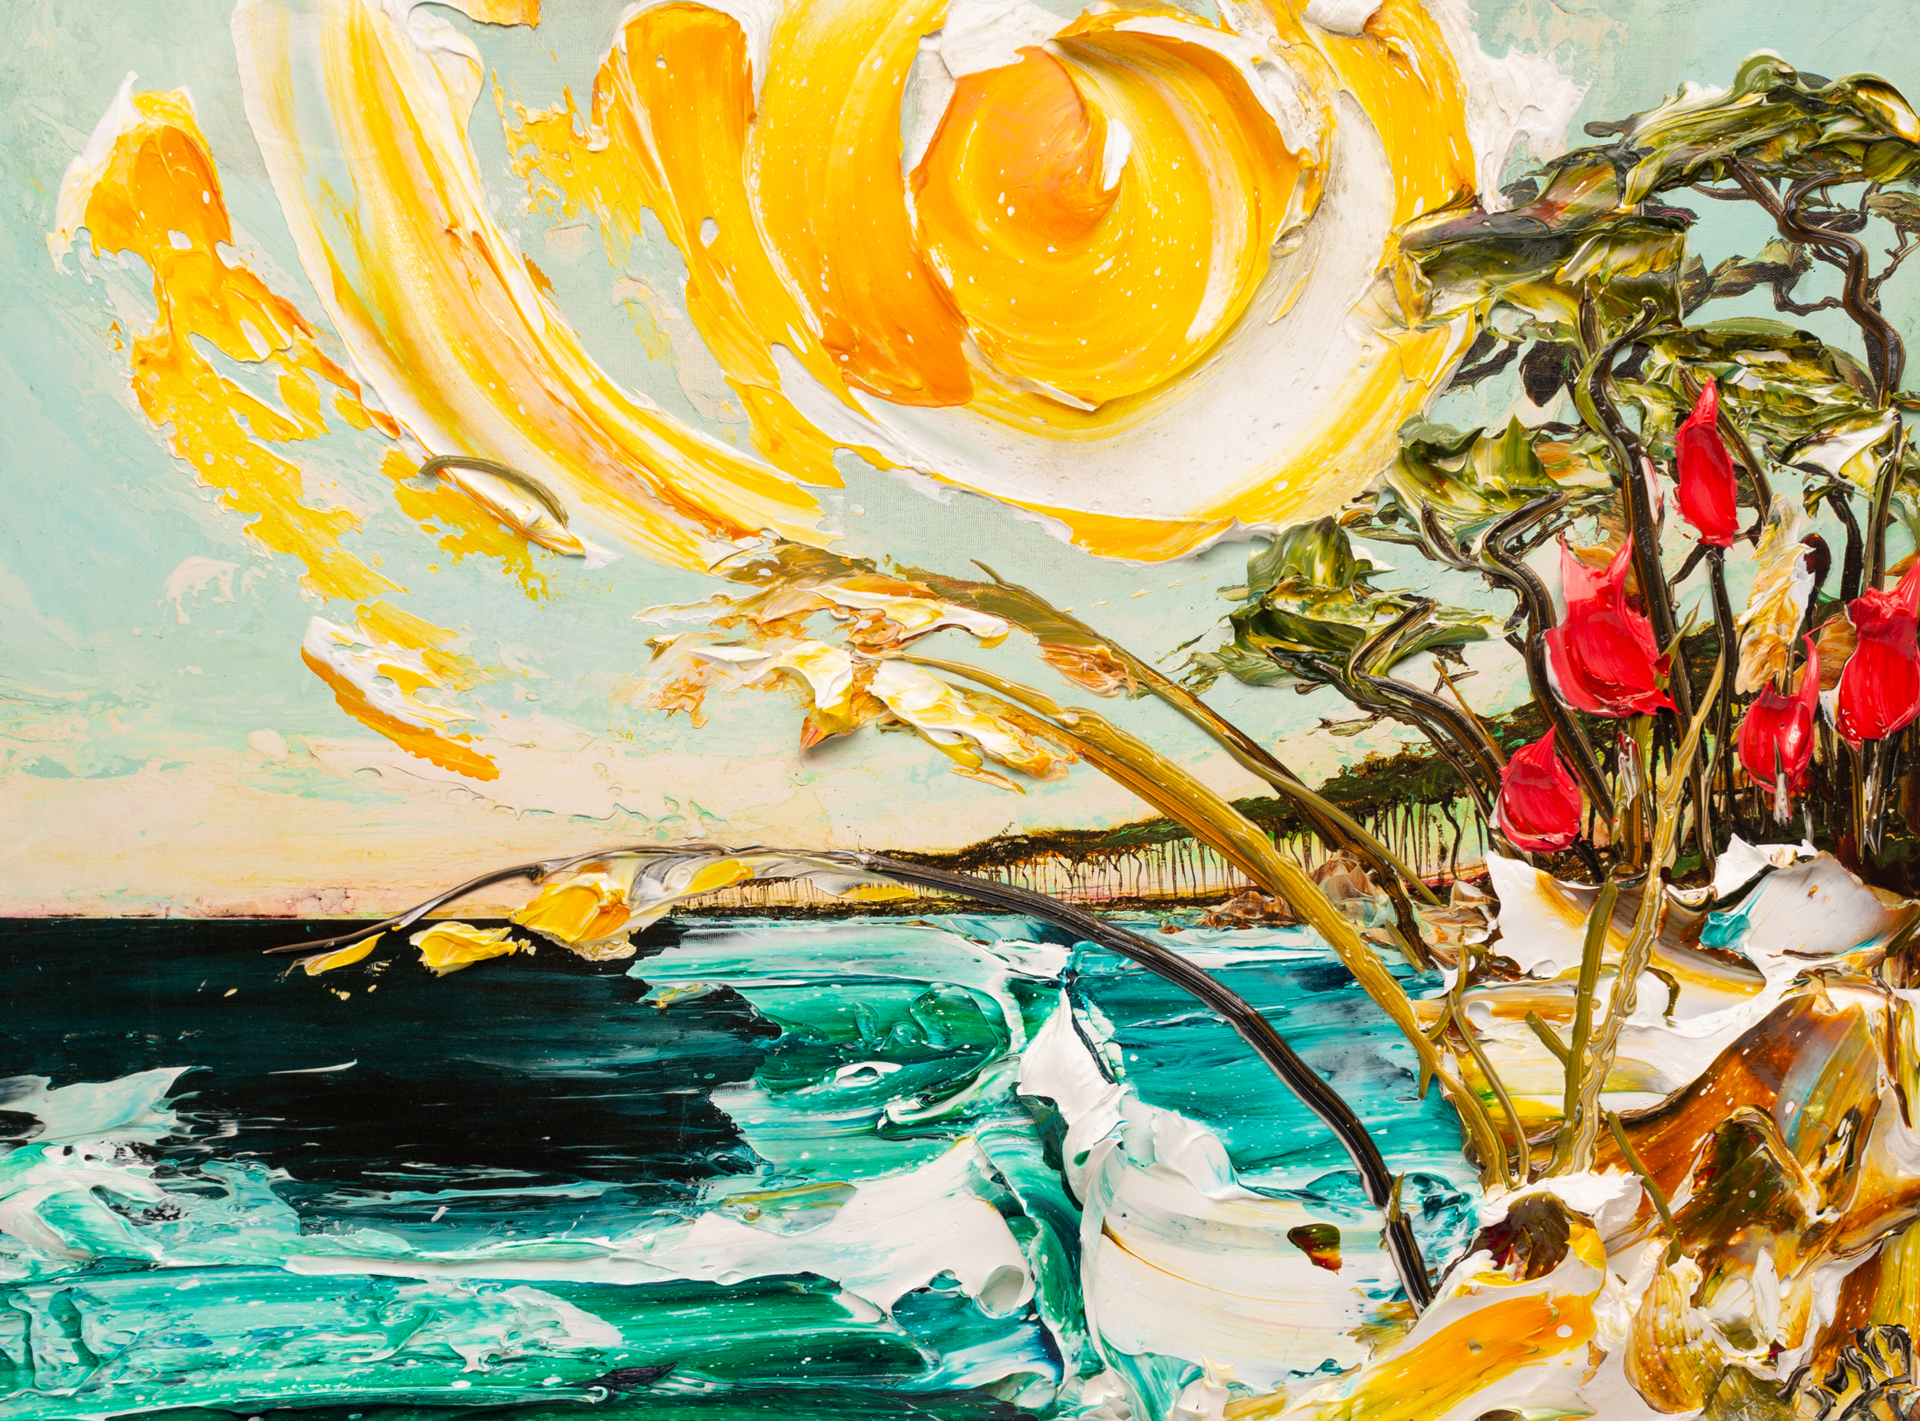 SEASCAPE SS-HPAE-35-50-32X24-2019-64 by JUSTIN GAFFREY EDITIONS